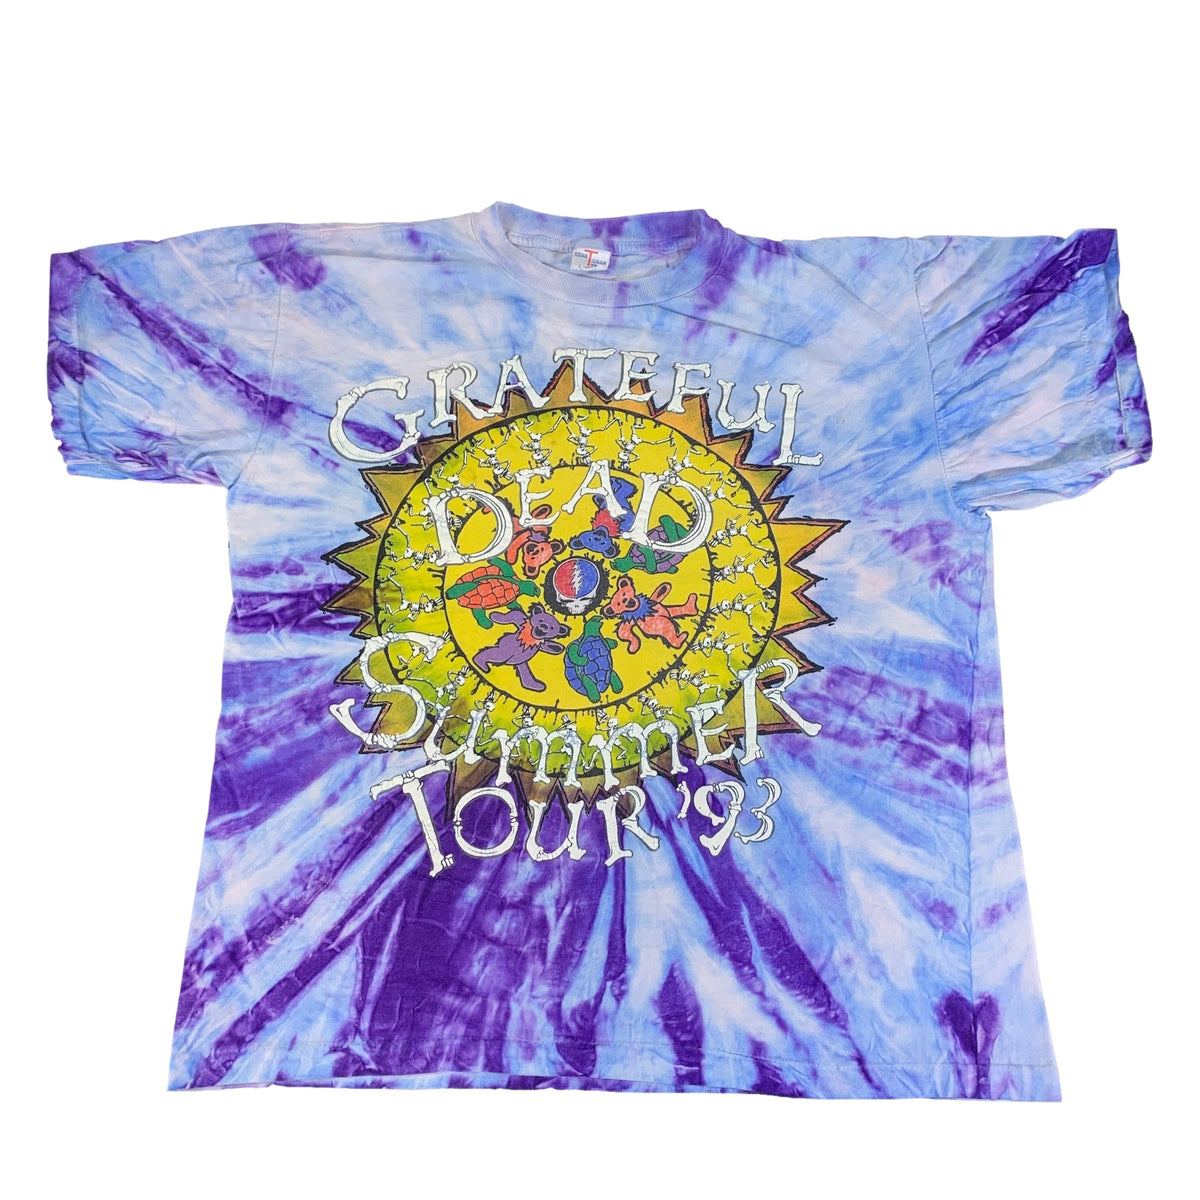 "Vintage Grateful Dead ""Summer 93"" T-Shirt"